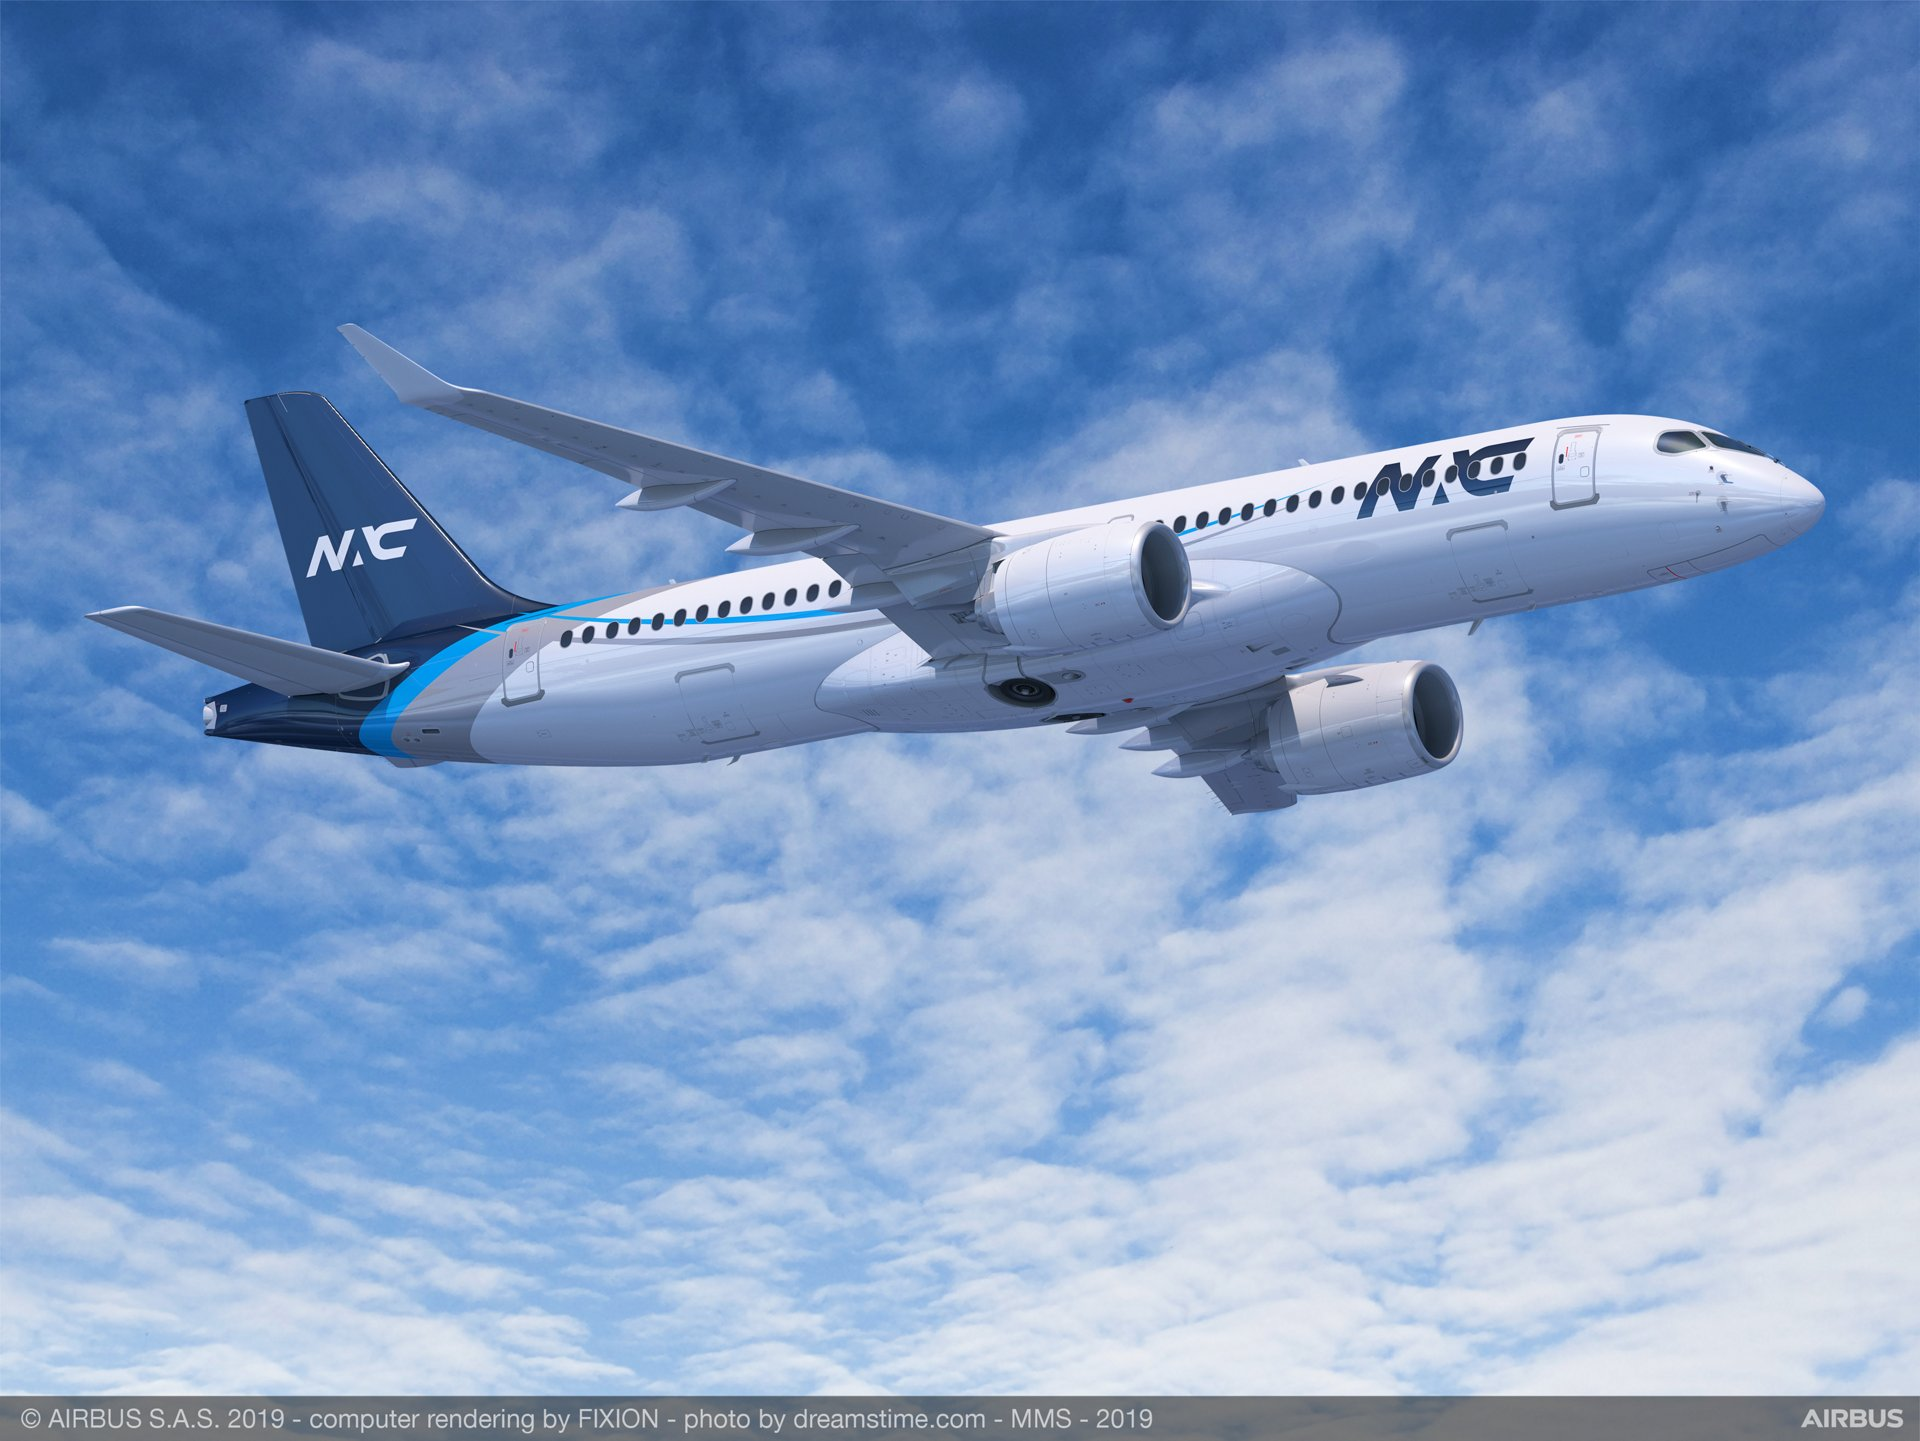 Nordic Aviation Capital will acquire 20 A220 Family aircraft as part of a Memorandum of Understanding announced at the 2019 Paris Air Show, including both A220-100 and A220-300 versions